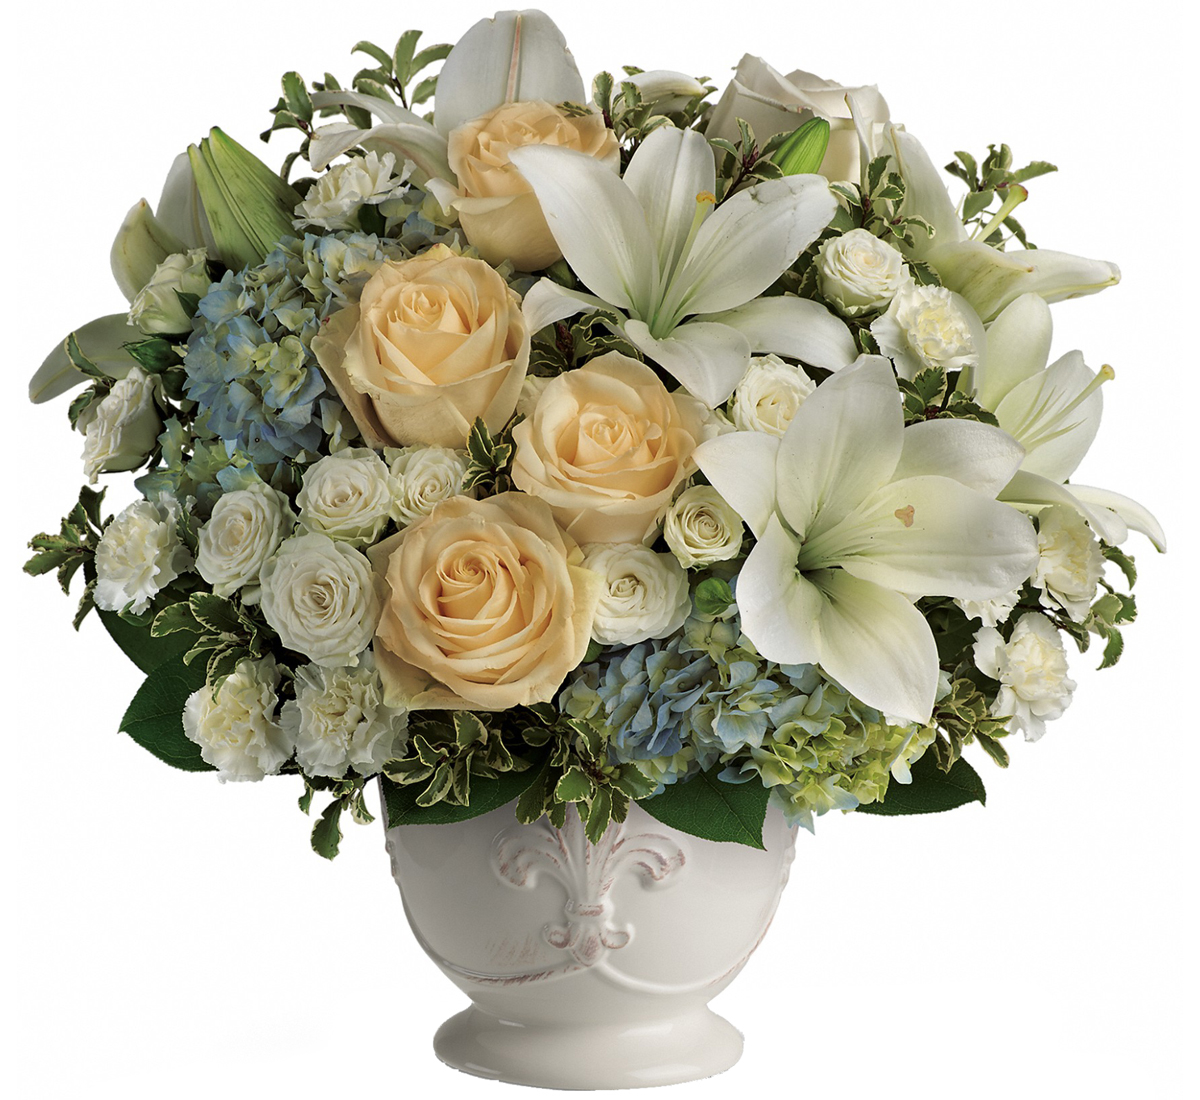 Funeral Vase Arrangements Send a heartfelt expression of your sympathies with an original vase gg-sound.tkully designed by our select florists, these elegant tabletop arrangements can be sent to the bereaved family's home or to the funeral home.